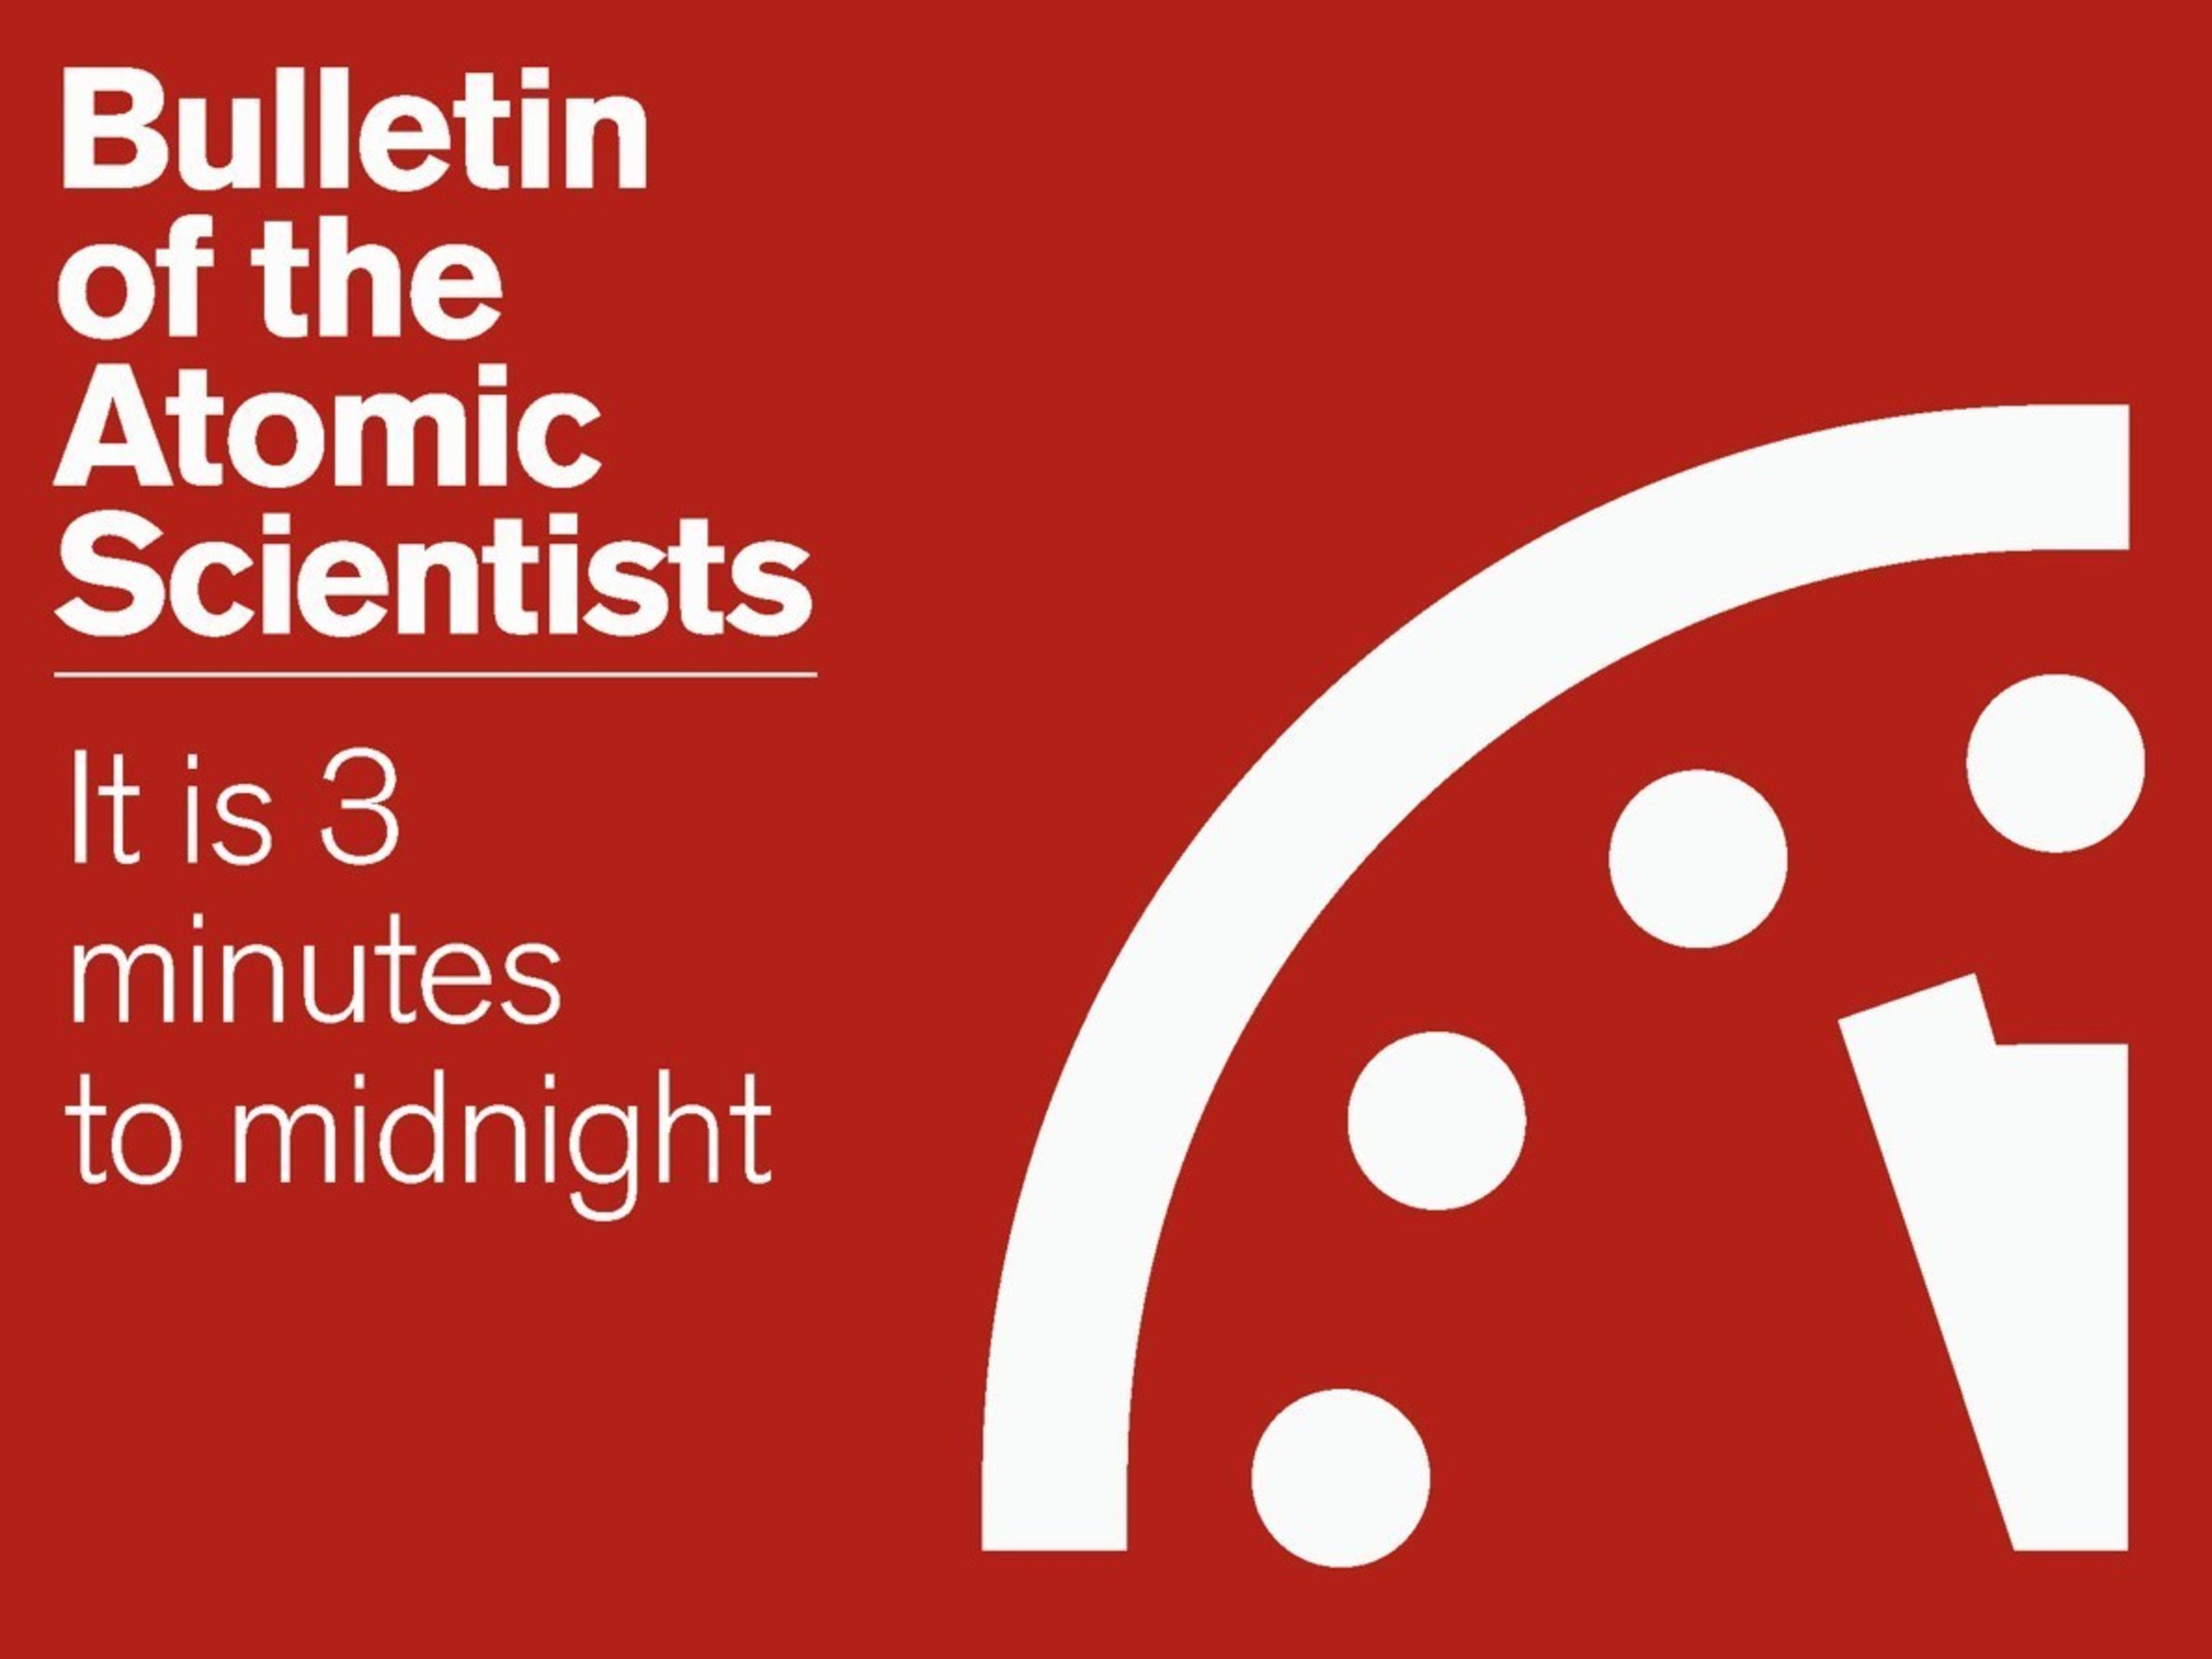 It Is 3 Minutes To Midnight - Climate Change And Nuclear Tensions Push Doomsday Clock Hands Forward